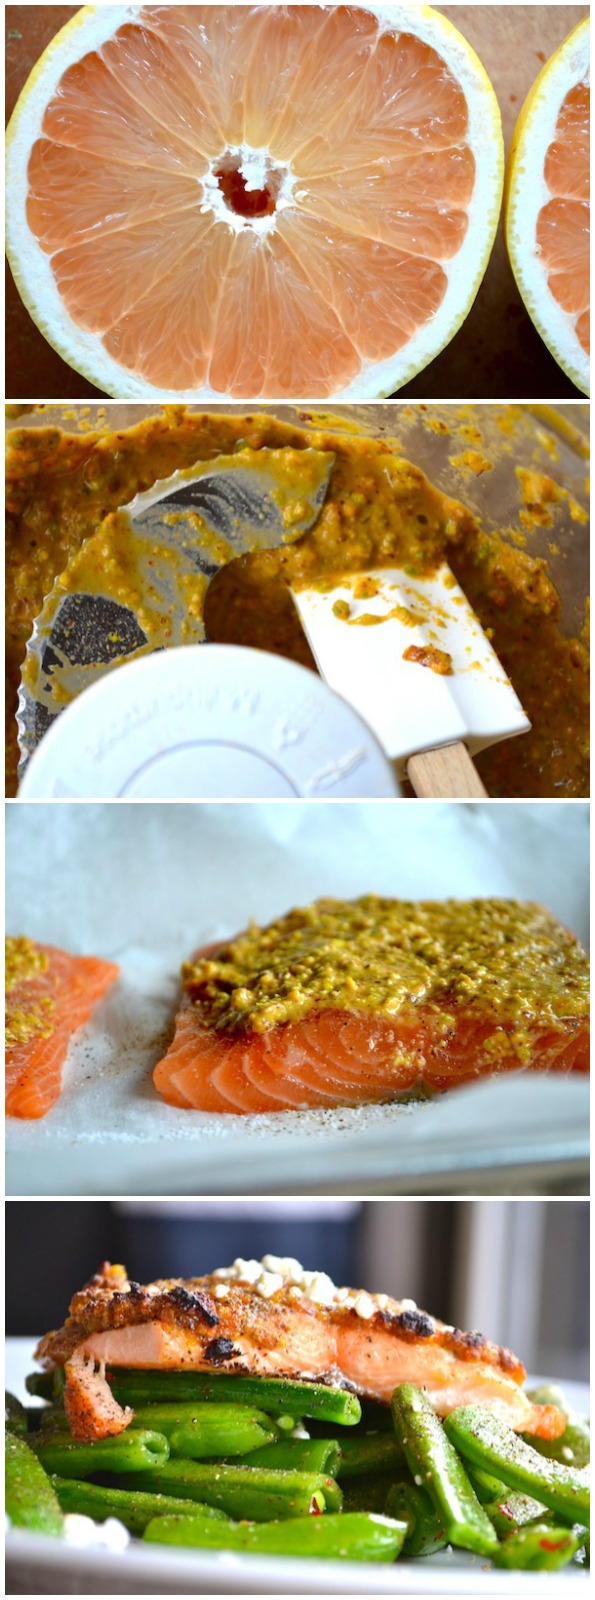 Grapefruit & Pistachio Crusted Salmon from Rachel Schultz